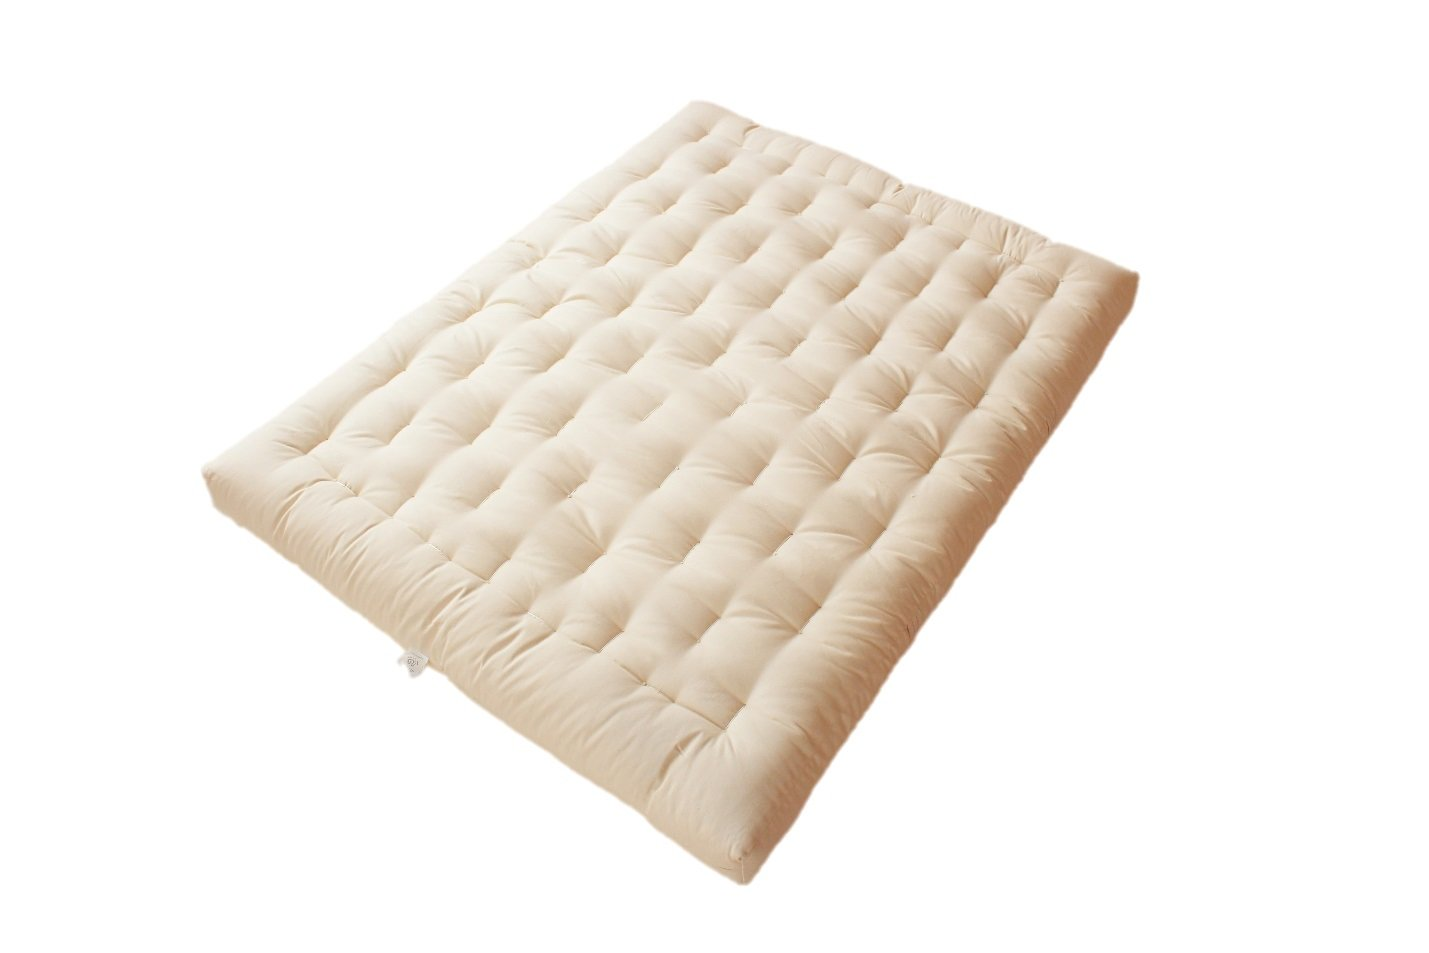 White Lotus Home Green Cotton and Wool Boulder Dreamton Mattress, Twin/6'' by White Lotus Home (Image #1)